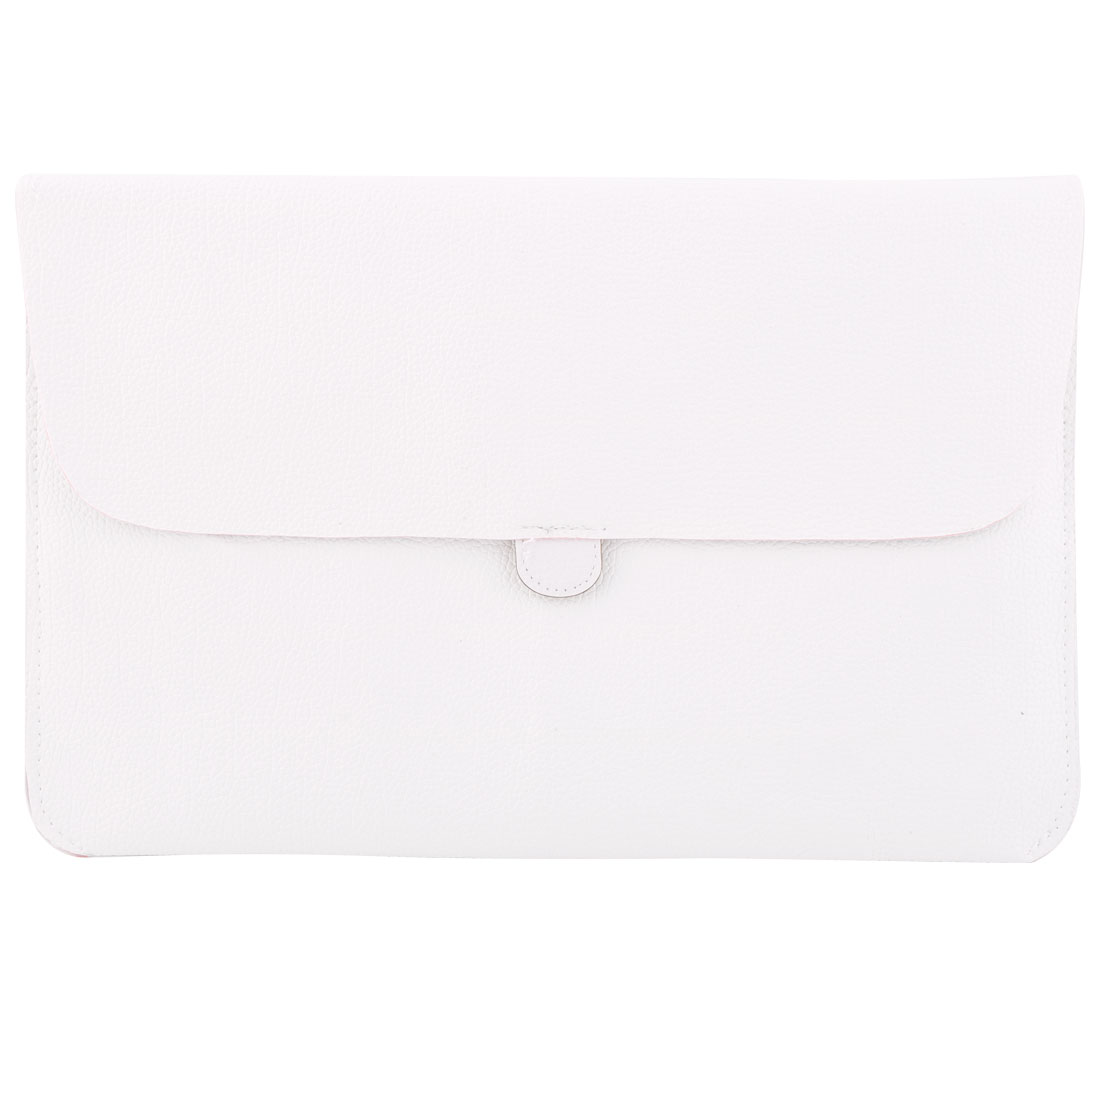 PC Computer PU Leather Sleeve Puoch Cover Shell White for Macbook Air 11 Inch